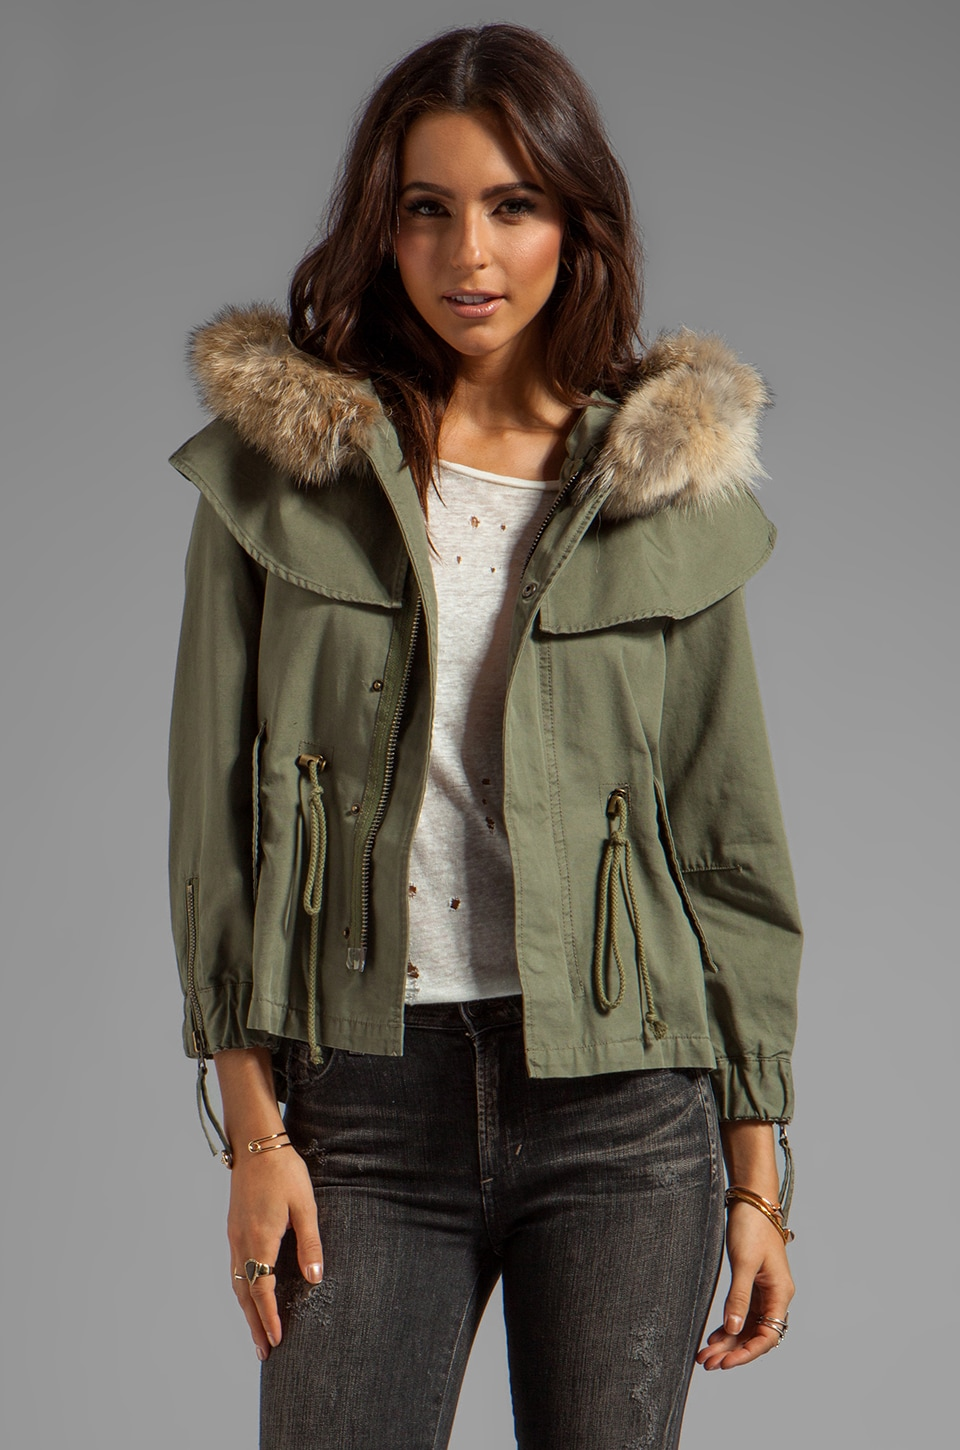 Skaist Taylor Twill Cropped Cape Jacket in Army Green